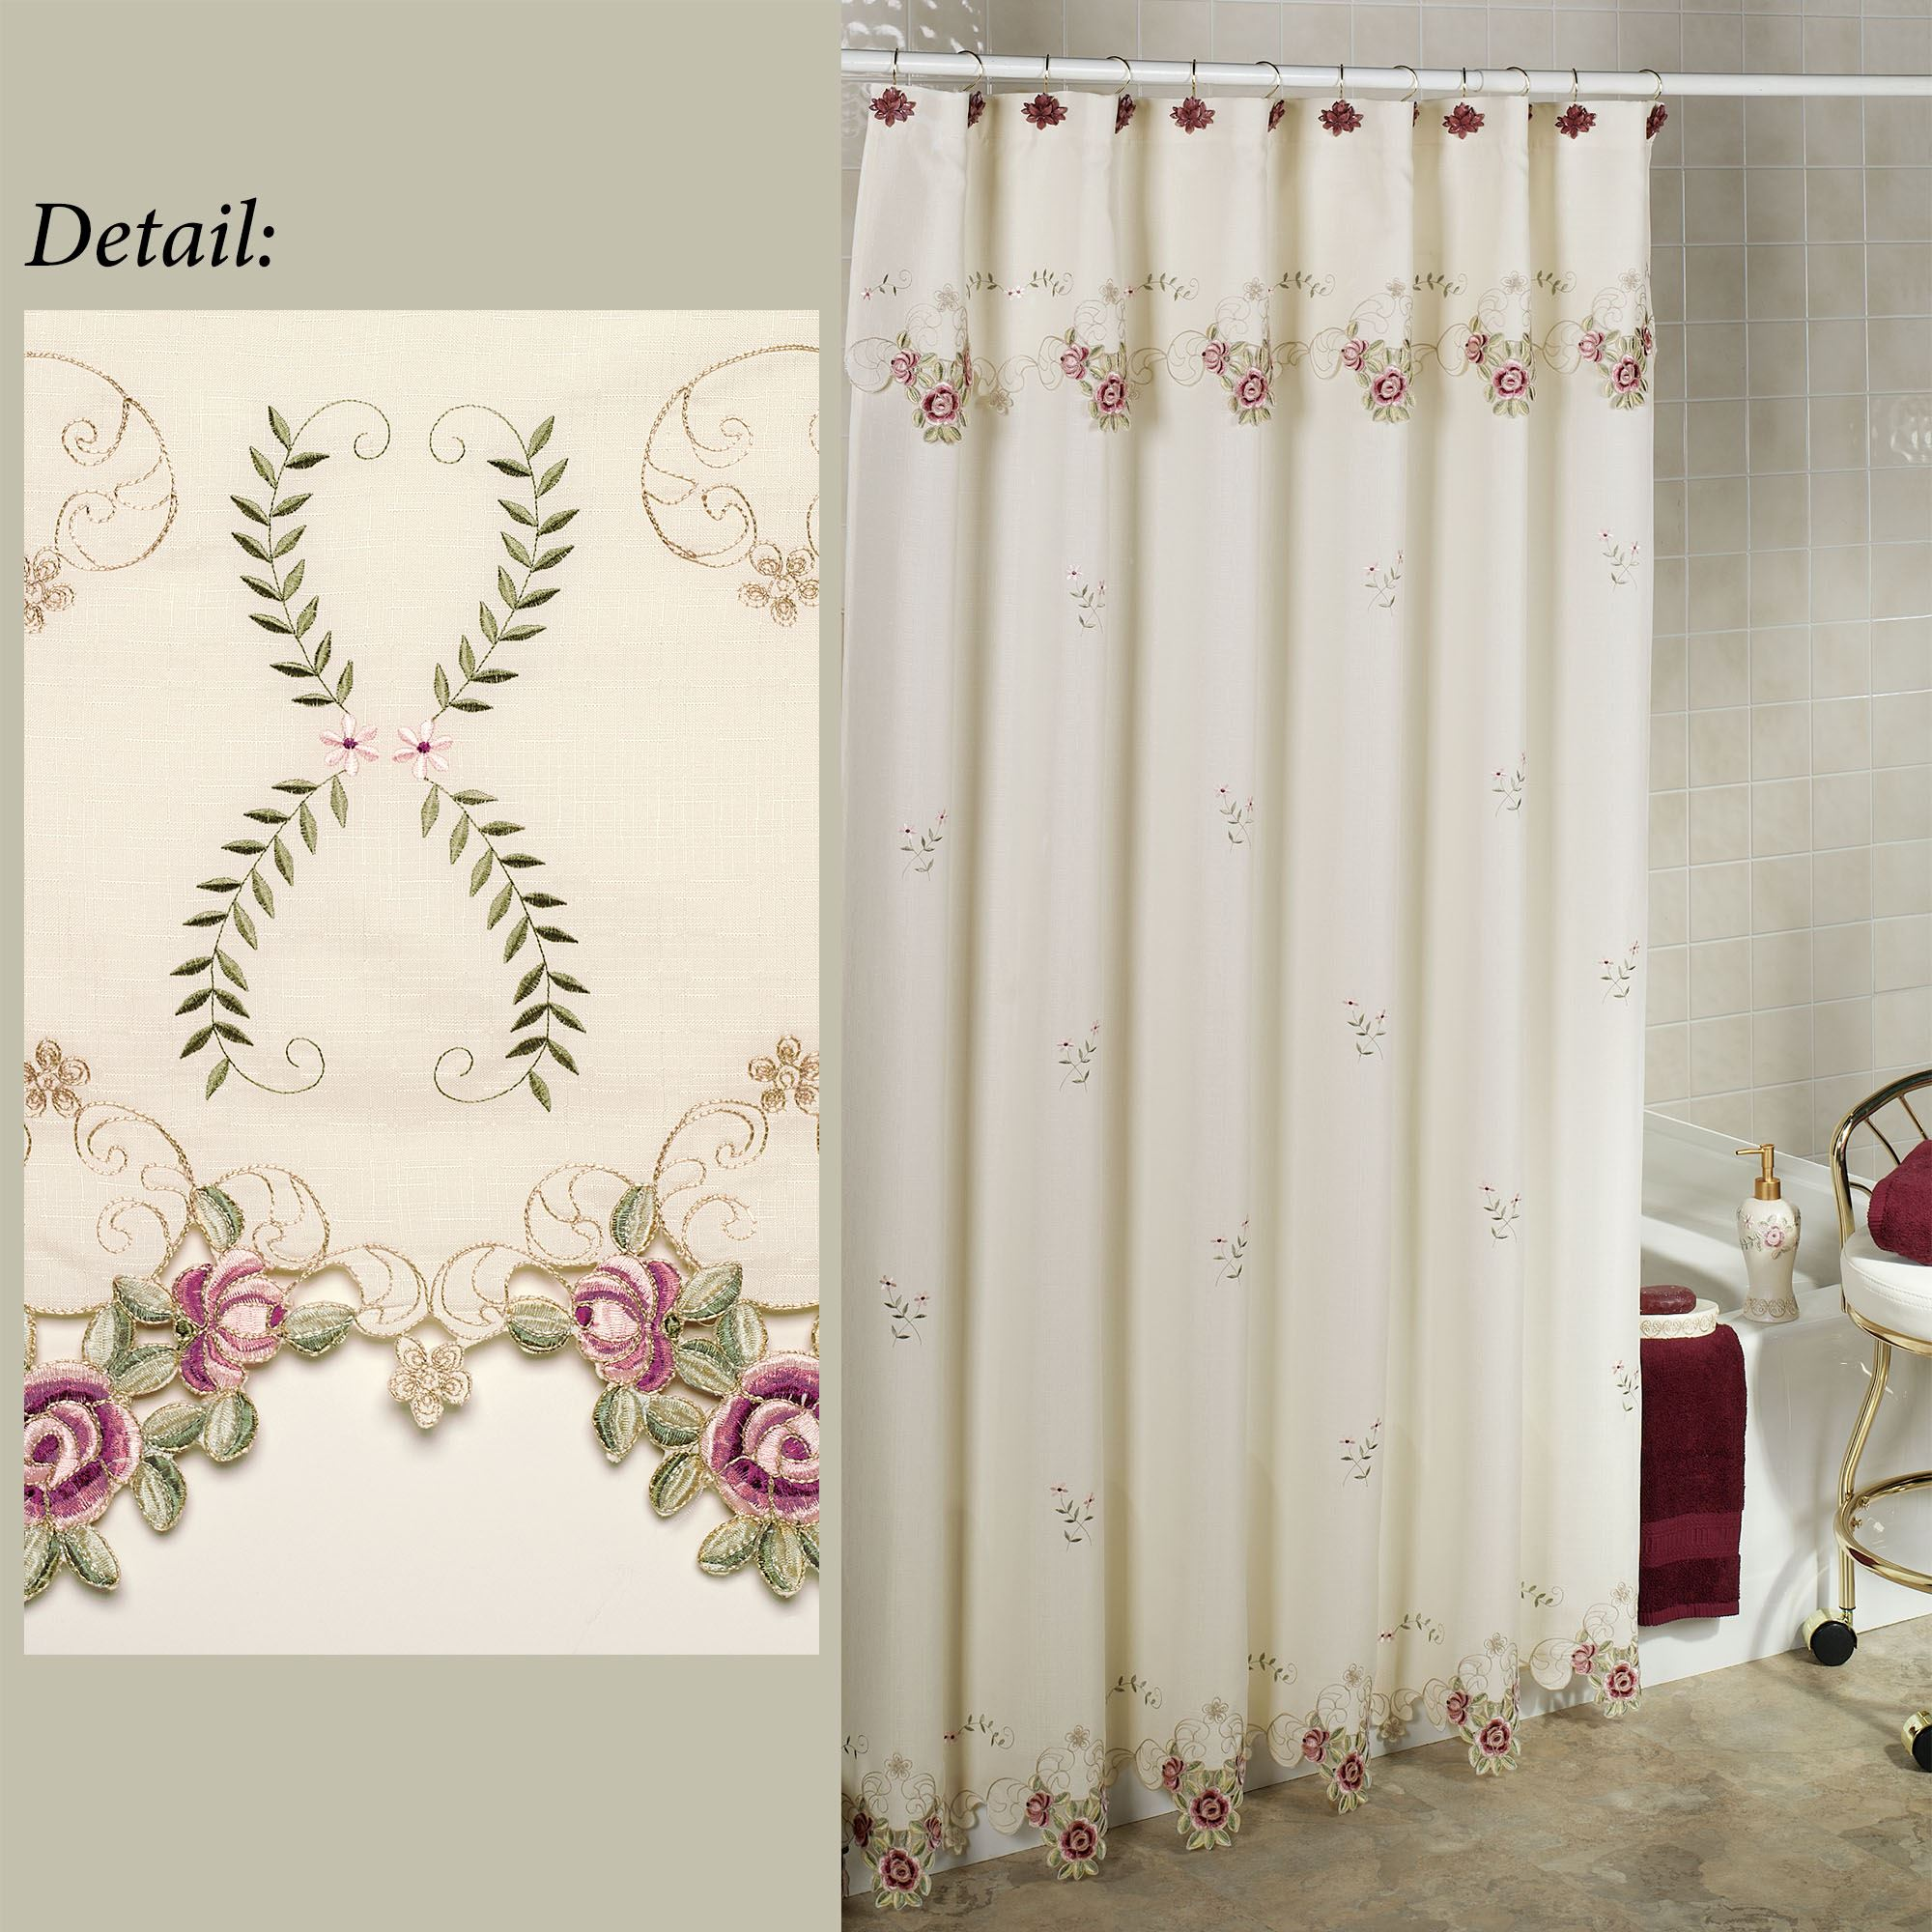 white dolphins new curtain curtains inspirational fabric shower sheer of